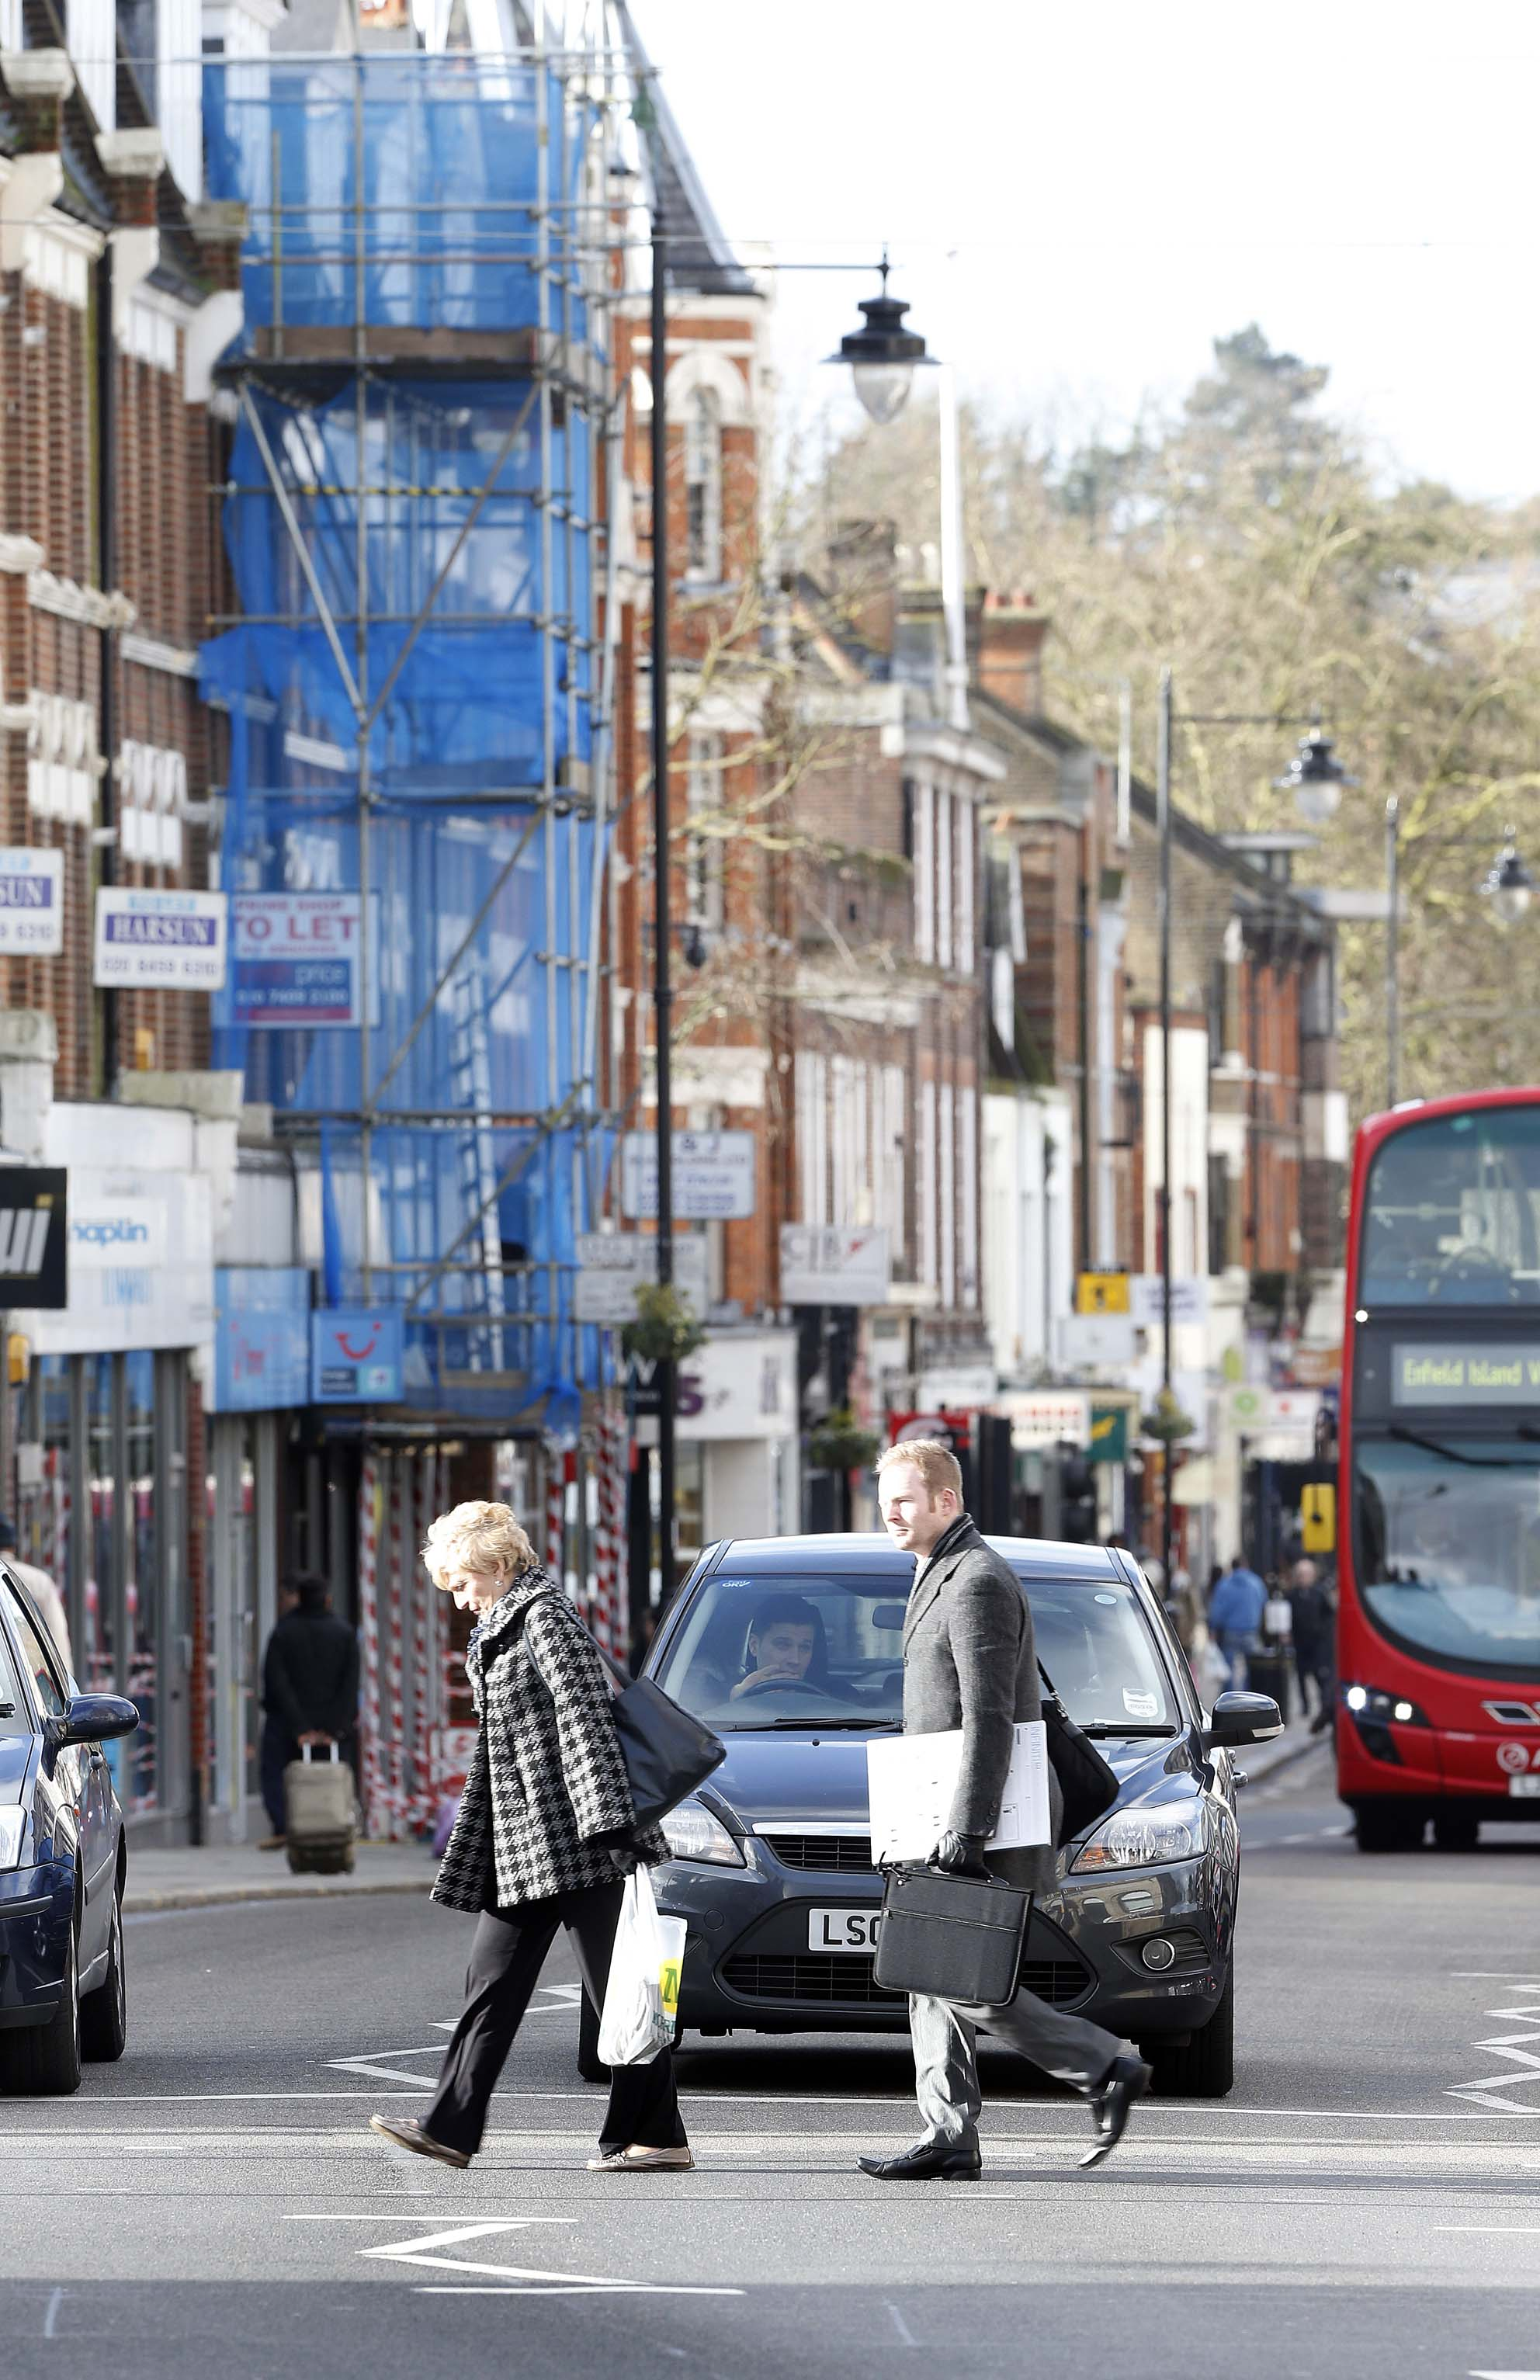 Businesses in Enfield Town high street concerned over initial mini-Holland plans